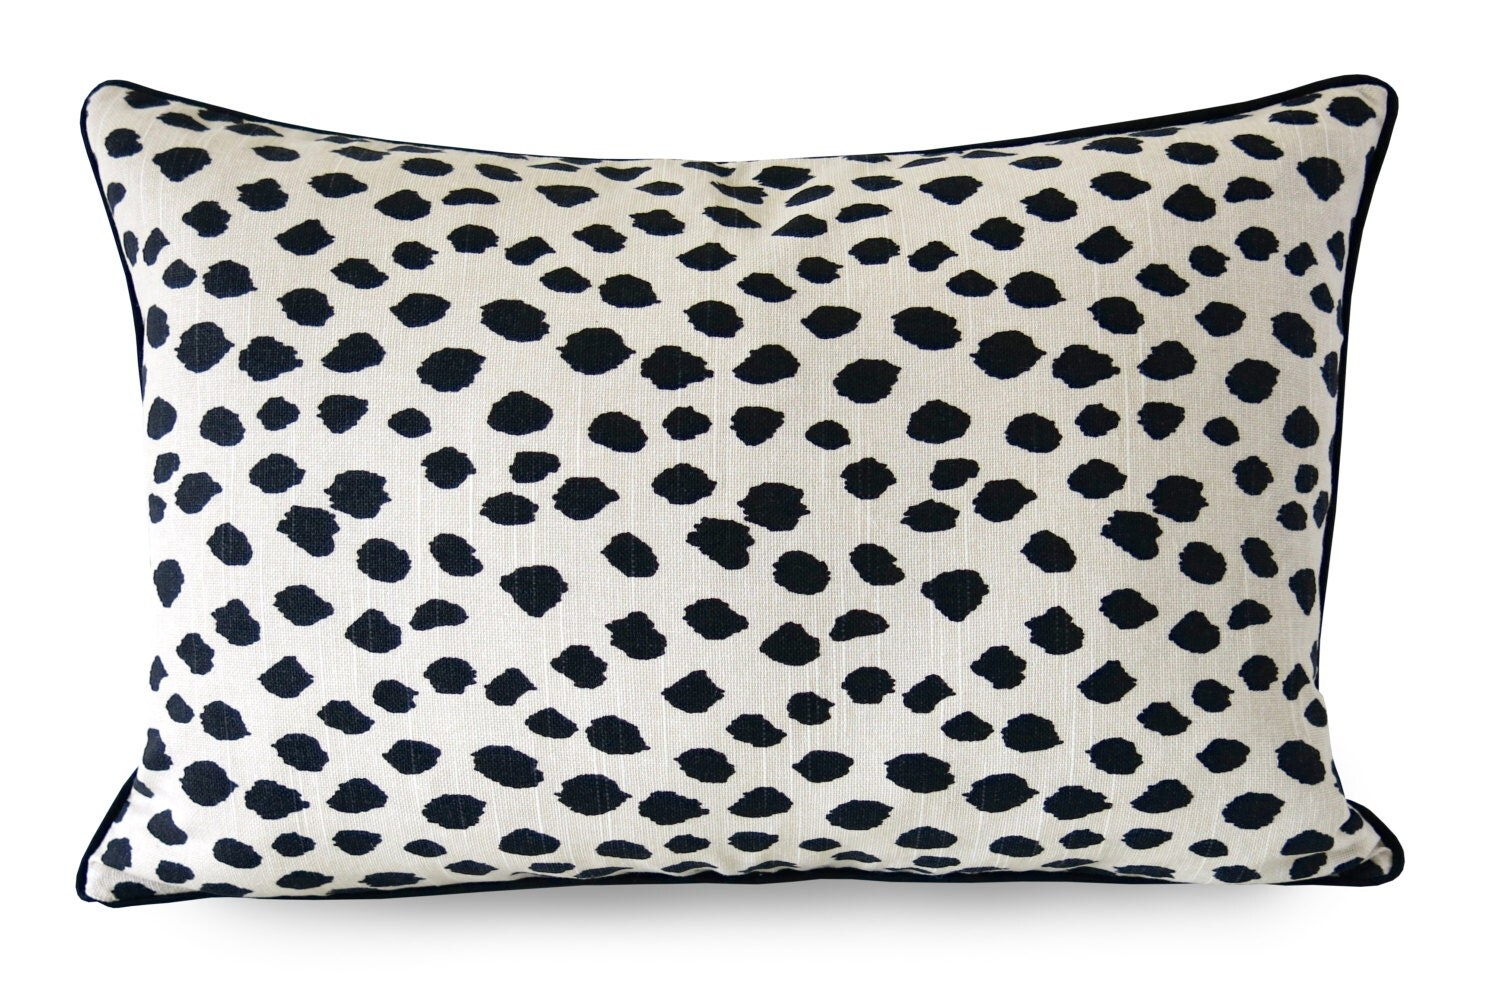 Black And Beige Decorative Pillows : Duma Spots Pillow Cover Black and Beige with by WillaSkyeHome